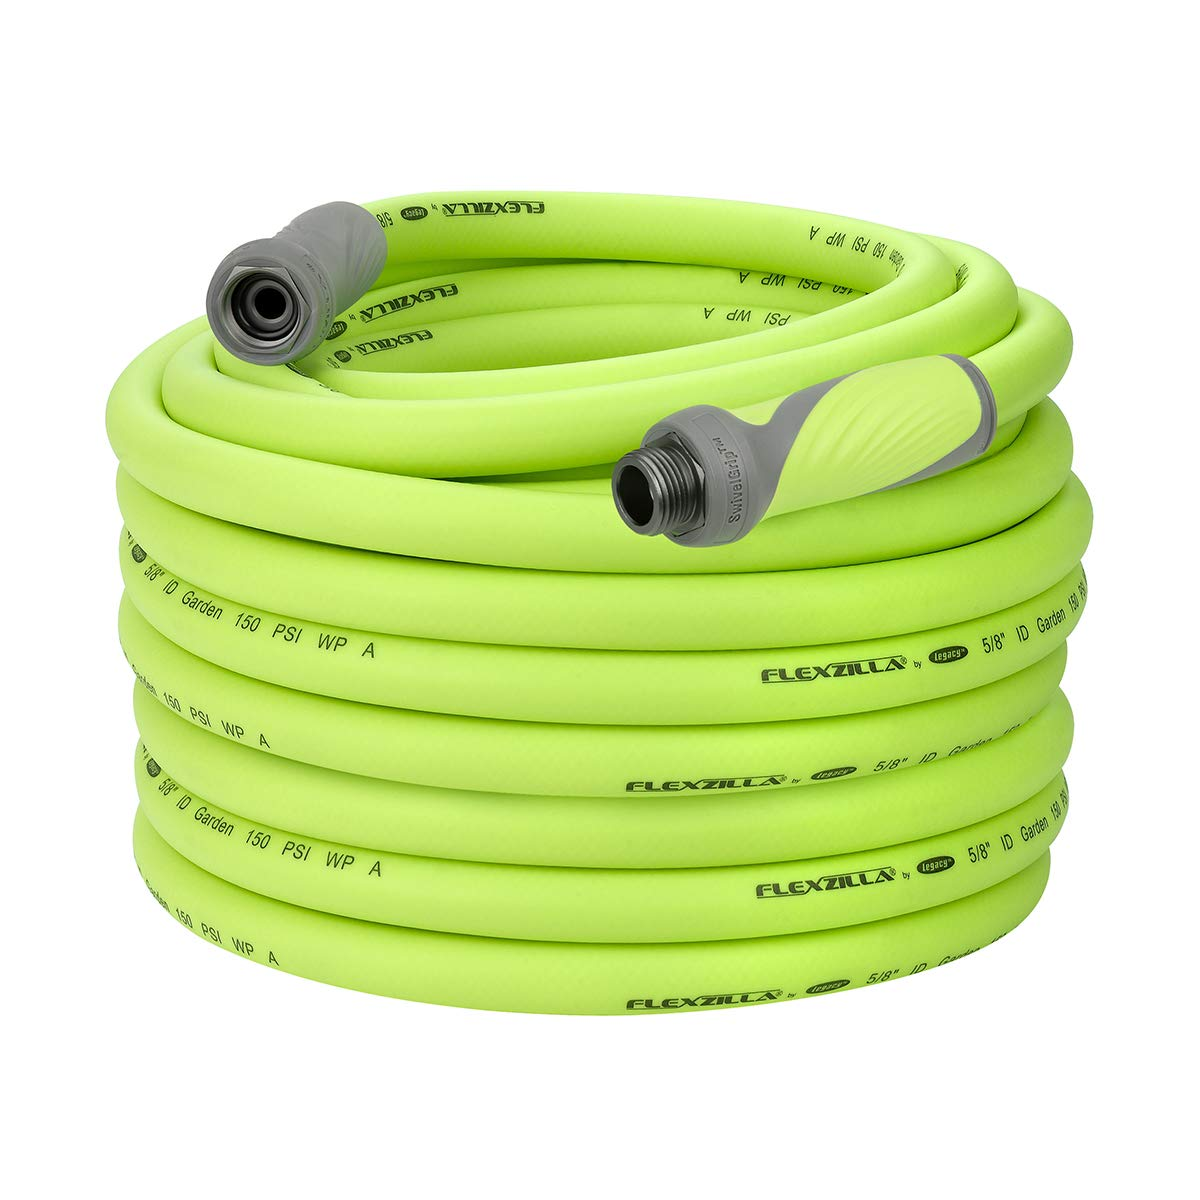 Flexzilla Garden Hose with SwivelGrip, 5/8 in. x 100 ft., Heavy Duty, Lightweight, Drinking Water Safe - HFZG5100YWS